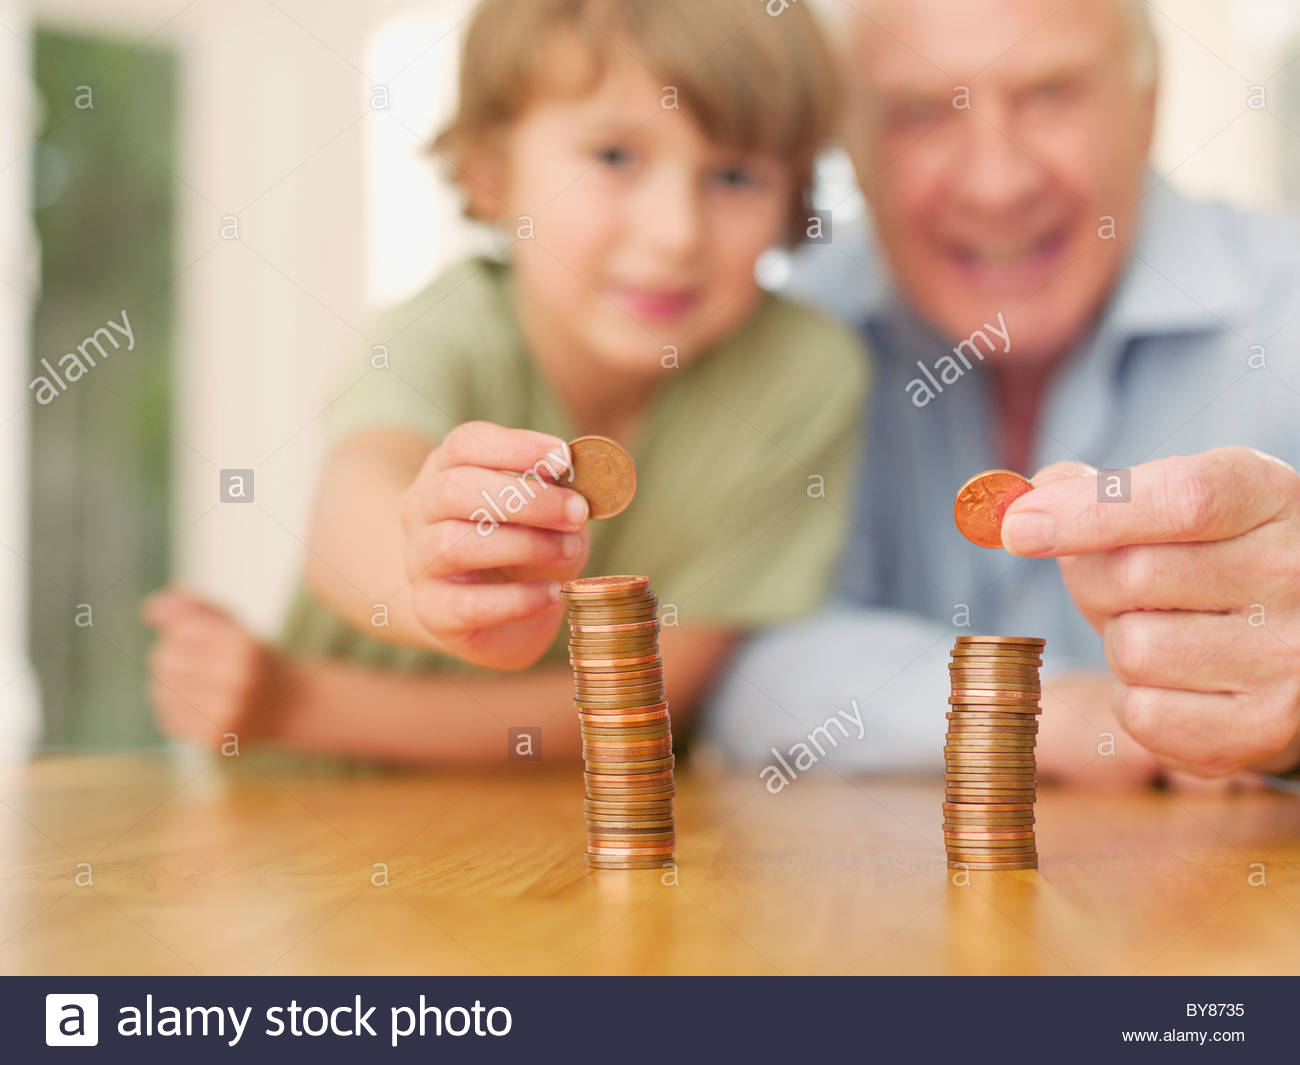 Grandfather and grandson stacking coins - Stock Image